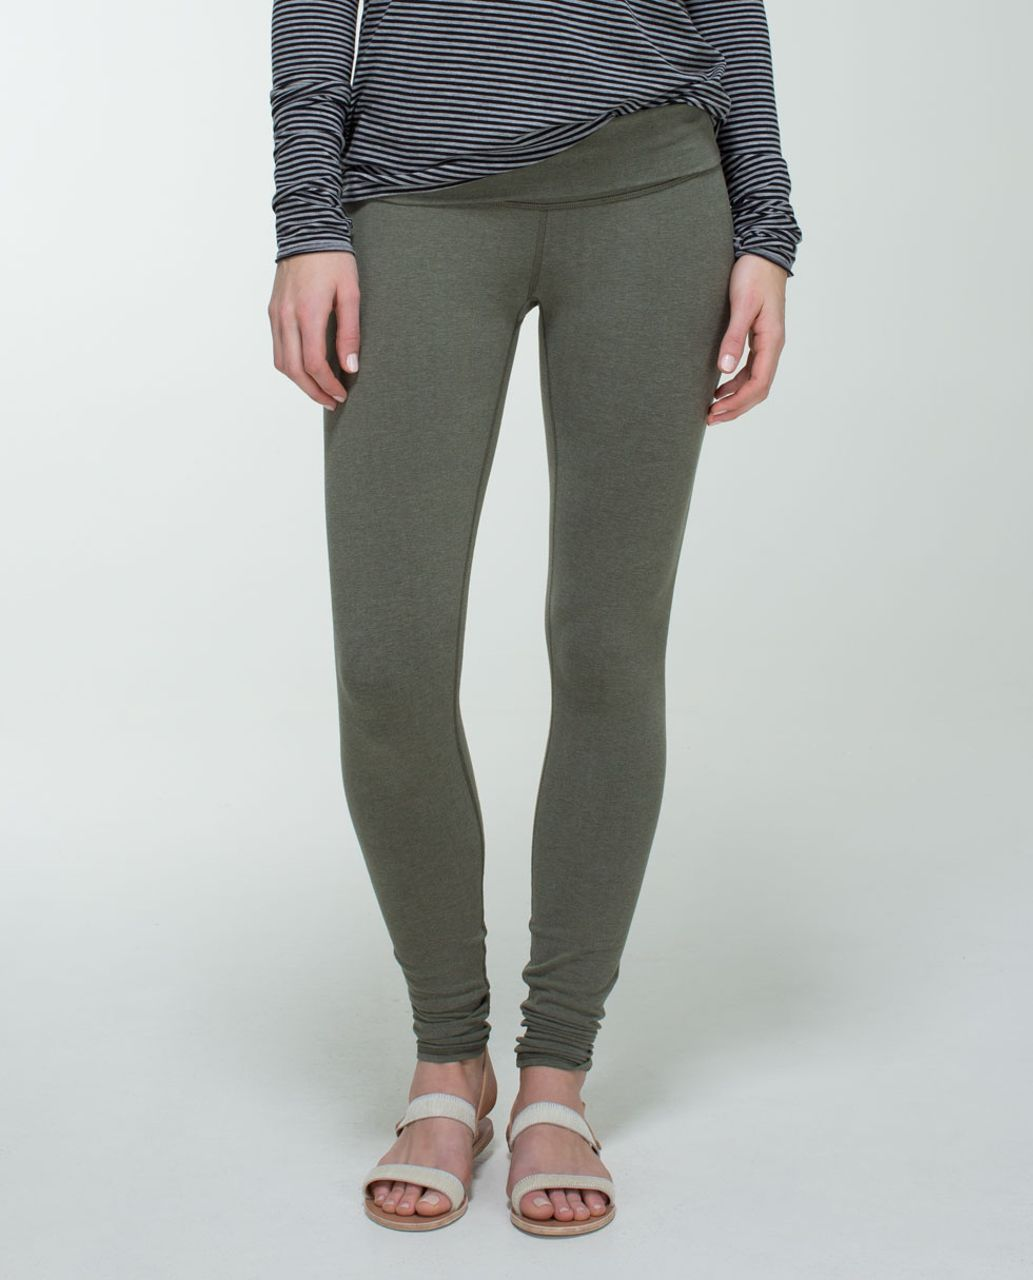 Lululemon Wunder Under Pant (Roll Down) *Cotton - Heathered Fatigue Green